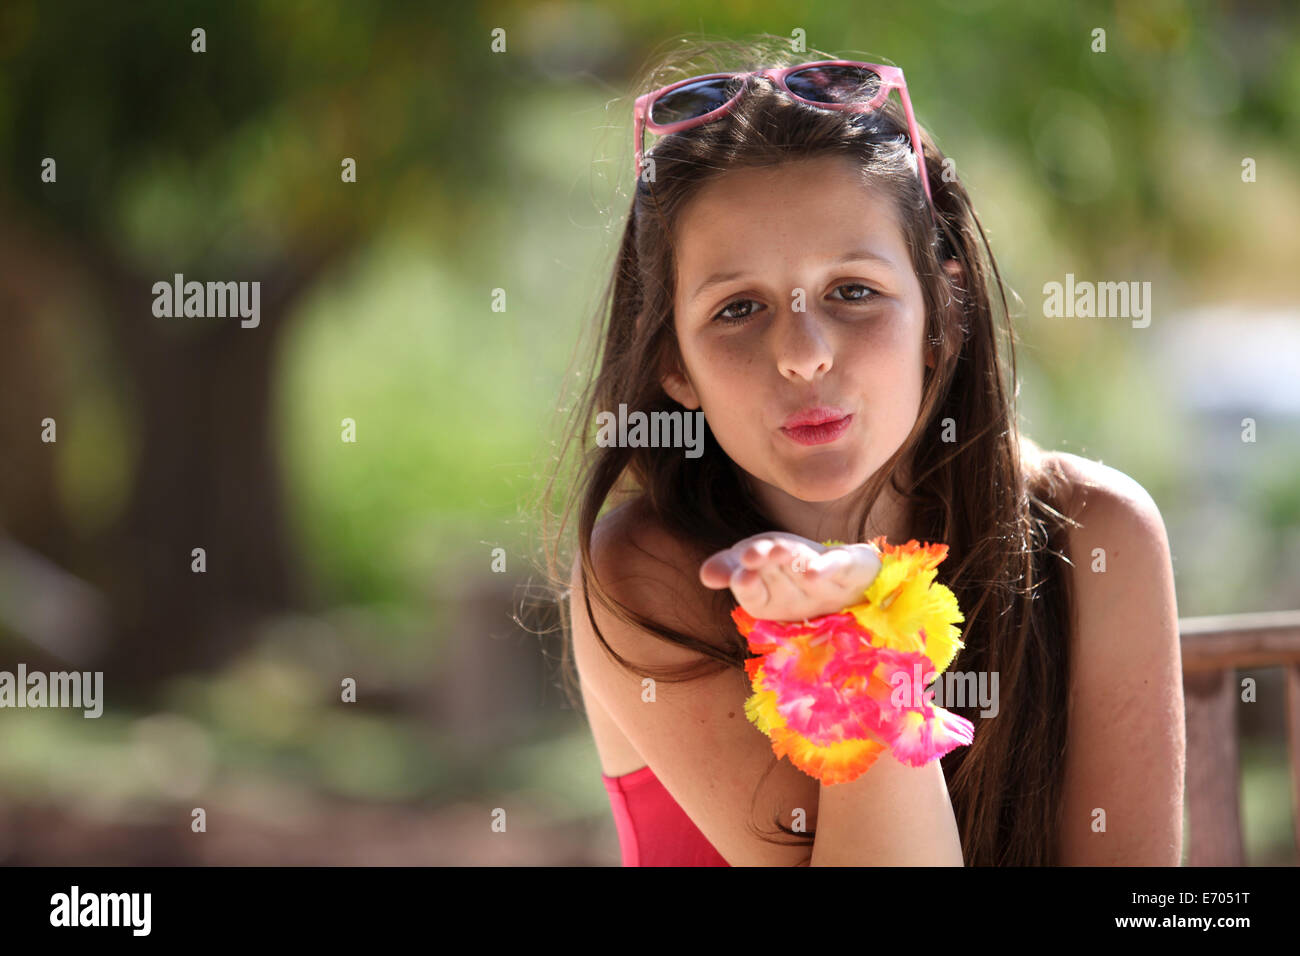 Portrait of a Girl in park kiss lips Photo Stock